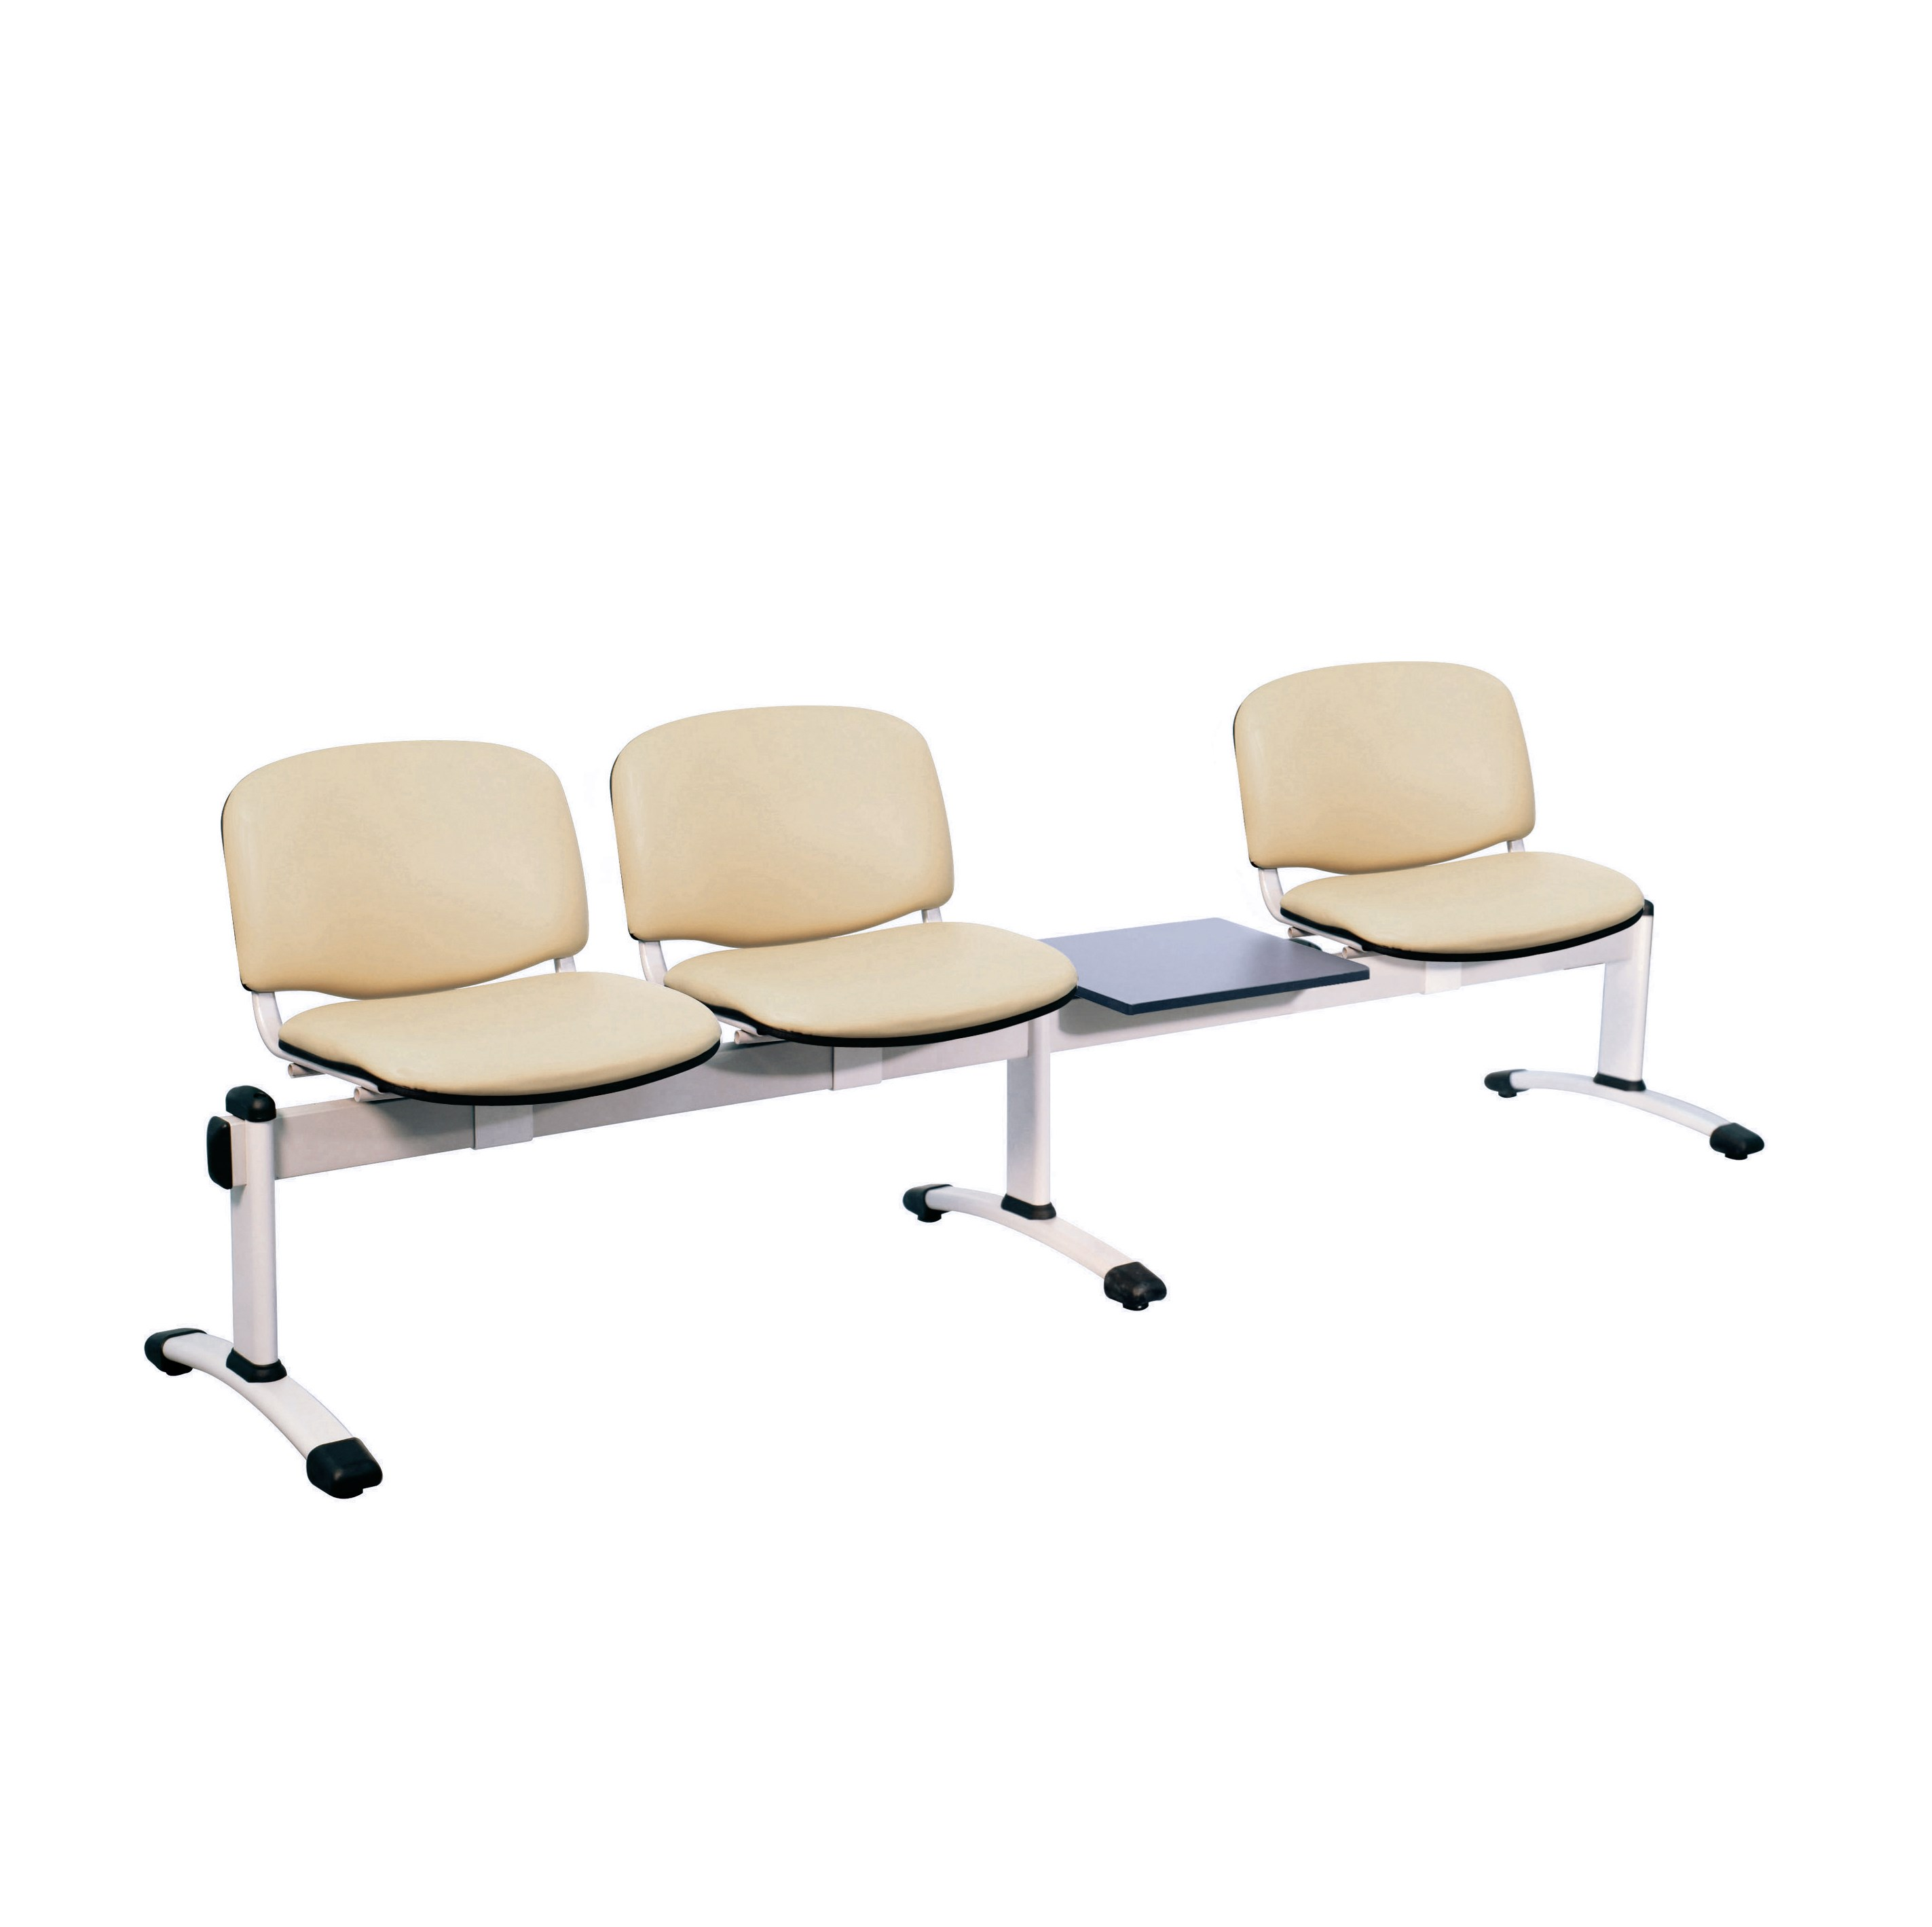 Chair Visitor Venus Modular 3 Seat 1 Table Moulded Plastic